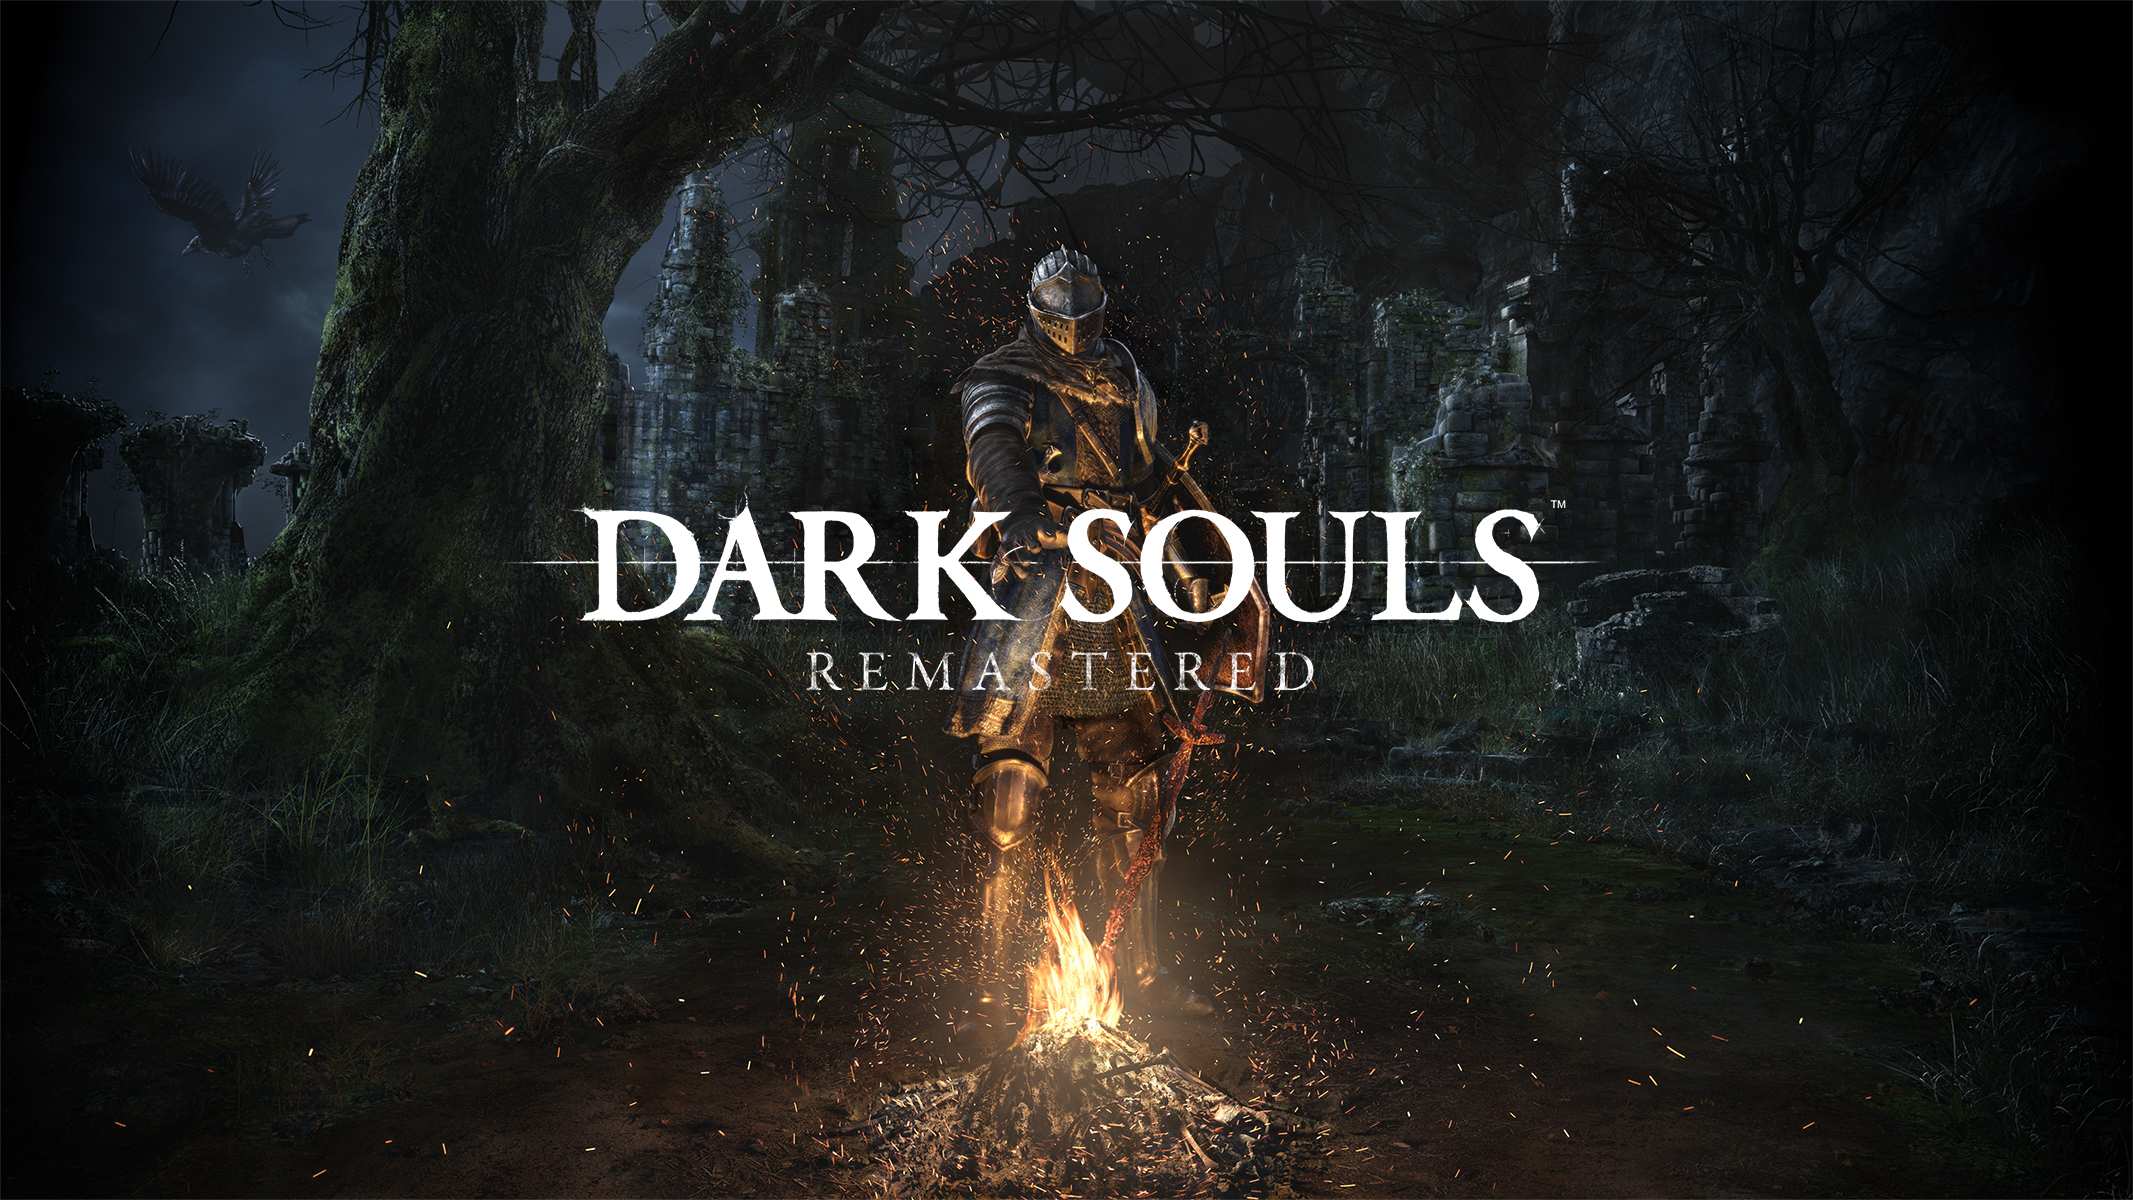 DARK SOULS        Prepare To Die Edition    Dark Souls  Remastered is     Dark Souls  Remastered will arrive on Steam on May 25  The original   unforgettable gameplay and lore will return in high definition detail  running at 60fps